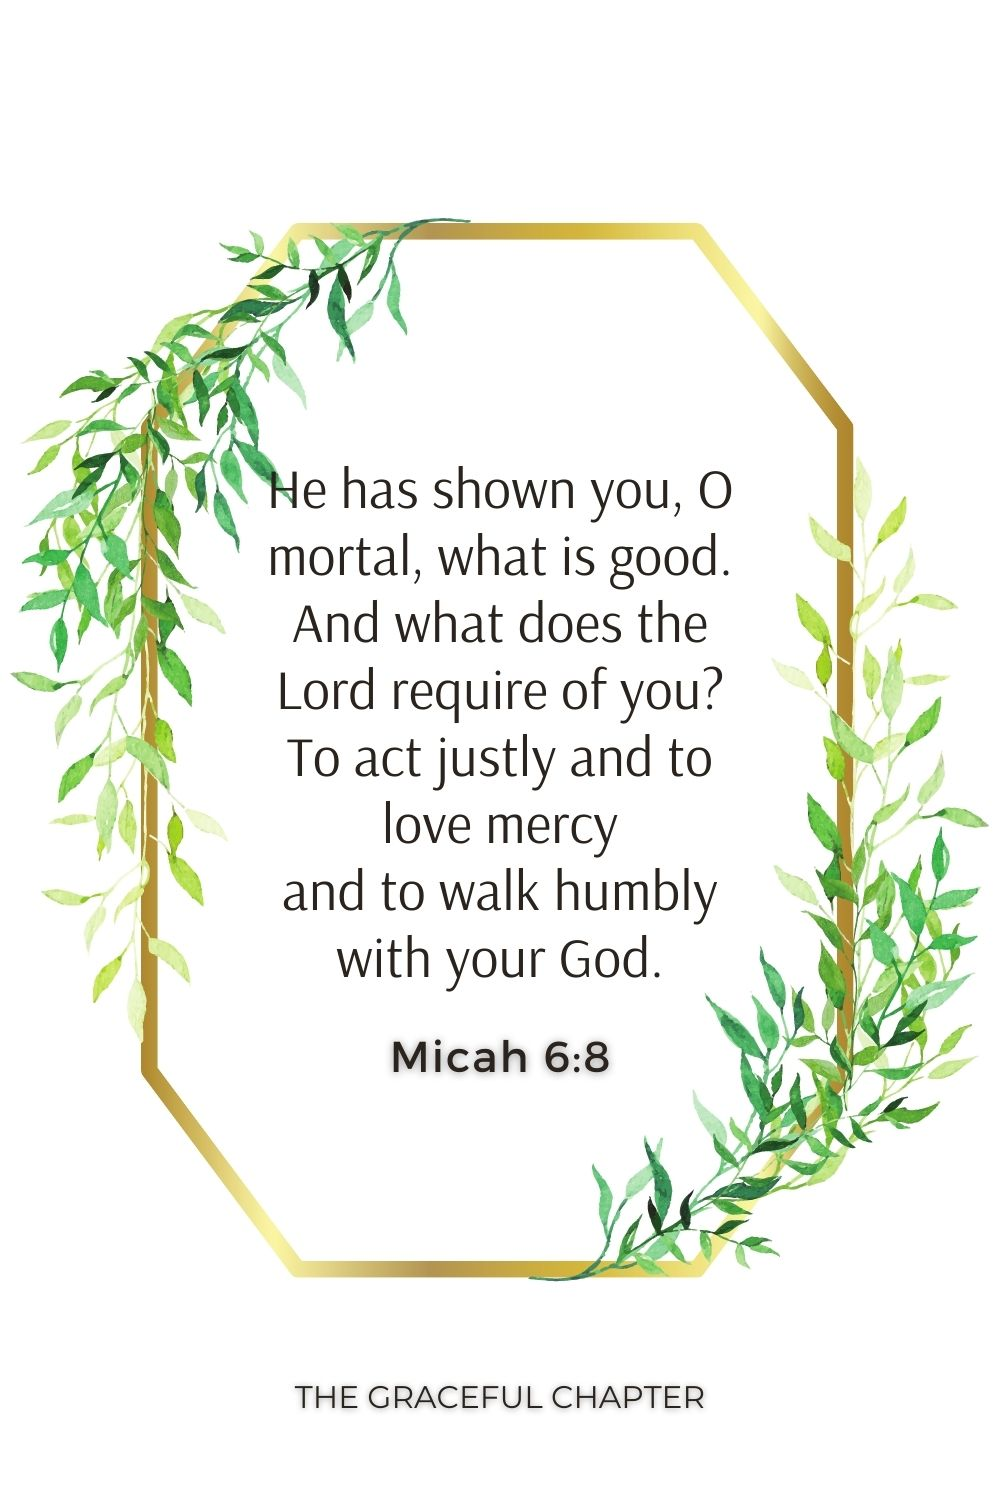 He has shown you, O mortal, what is good. And what does the Lord require of you? To act justly and to love mercy and to walk humbly with your God. Micah 6:8